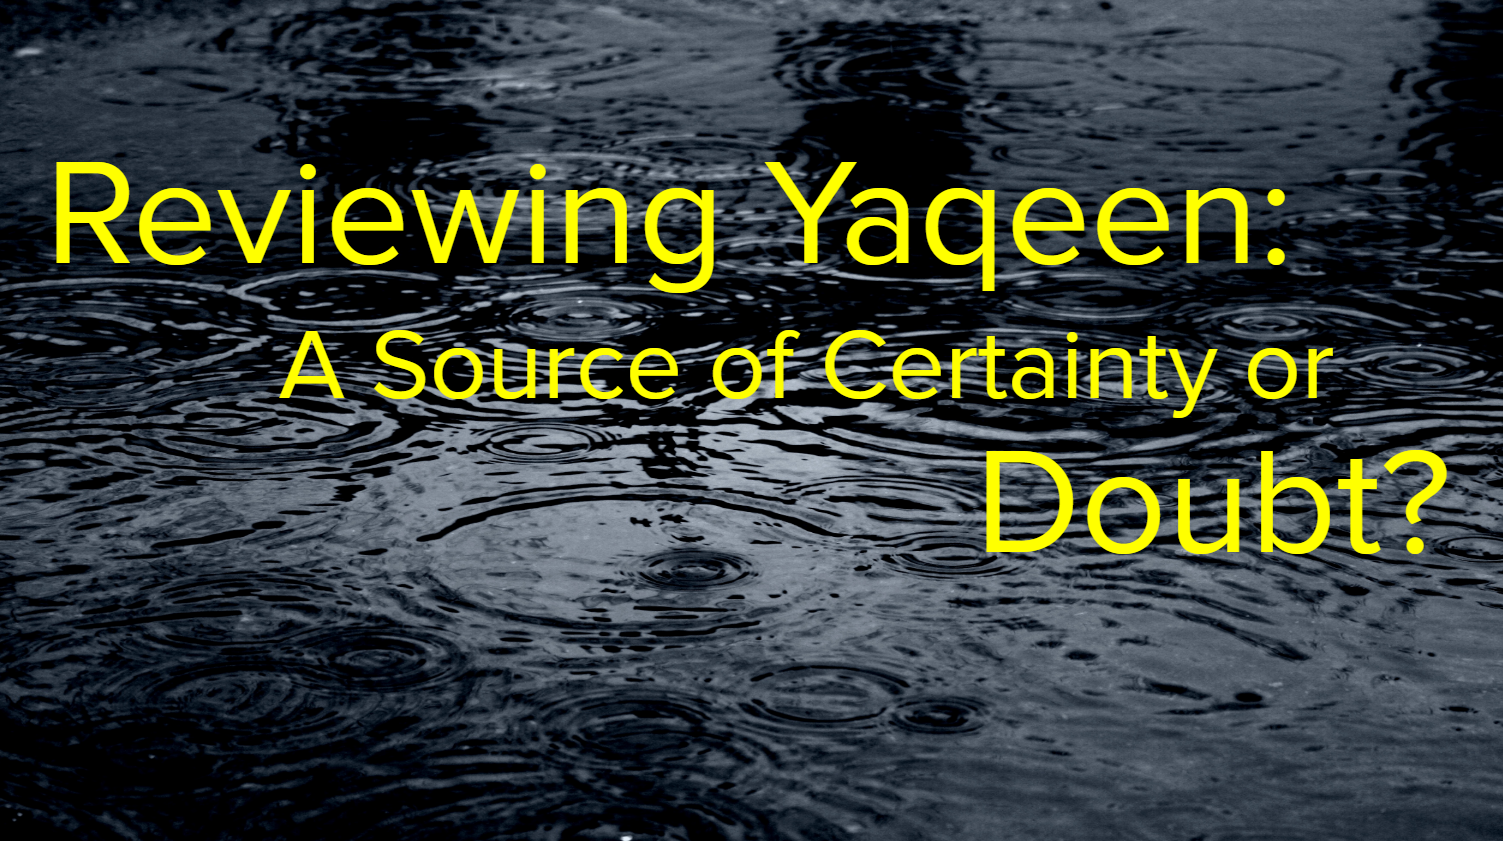 Reviewing Yaqeen Institute A Source Of Certainty Or Doubt The Muslim Skeptic